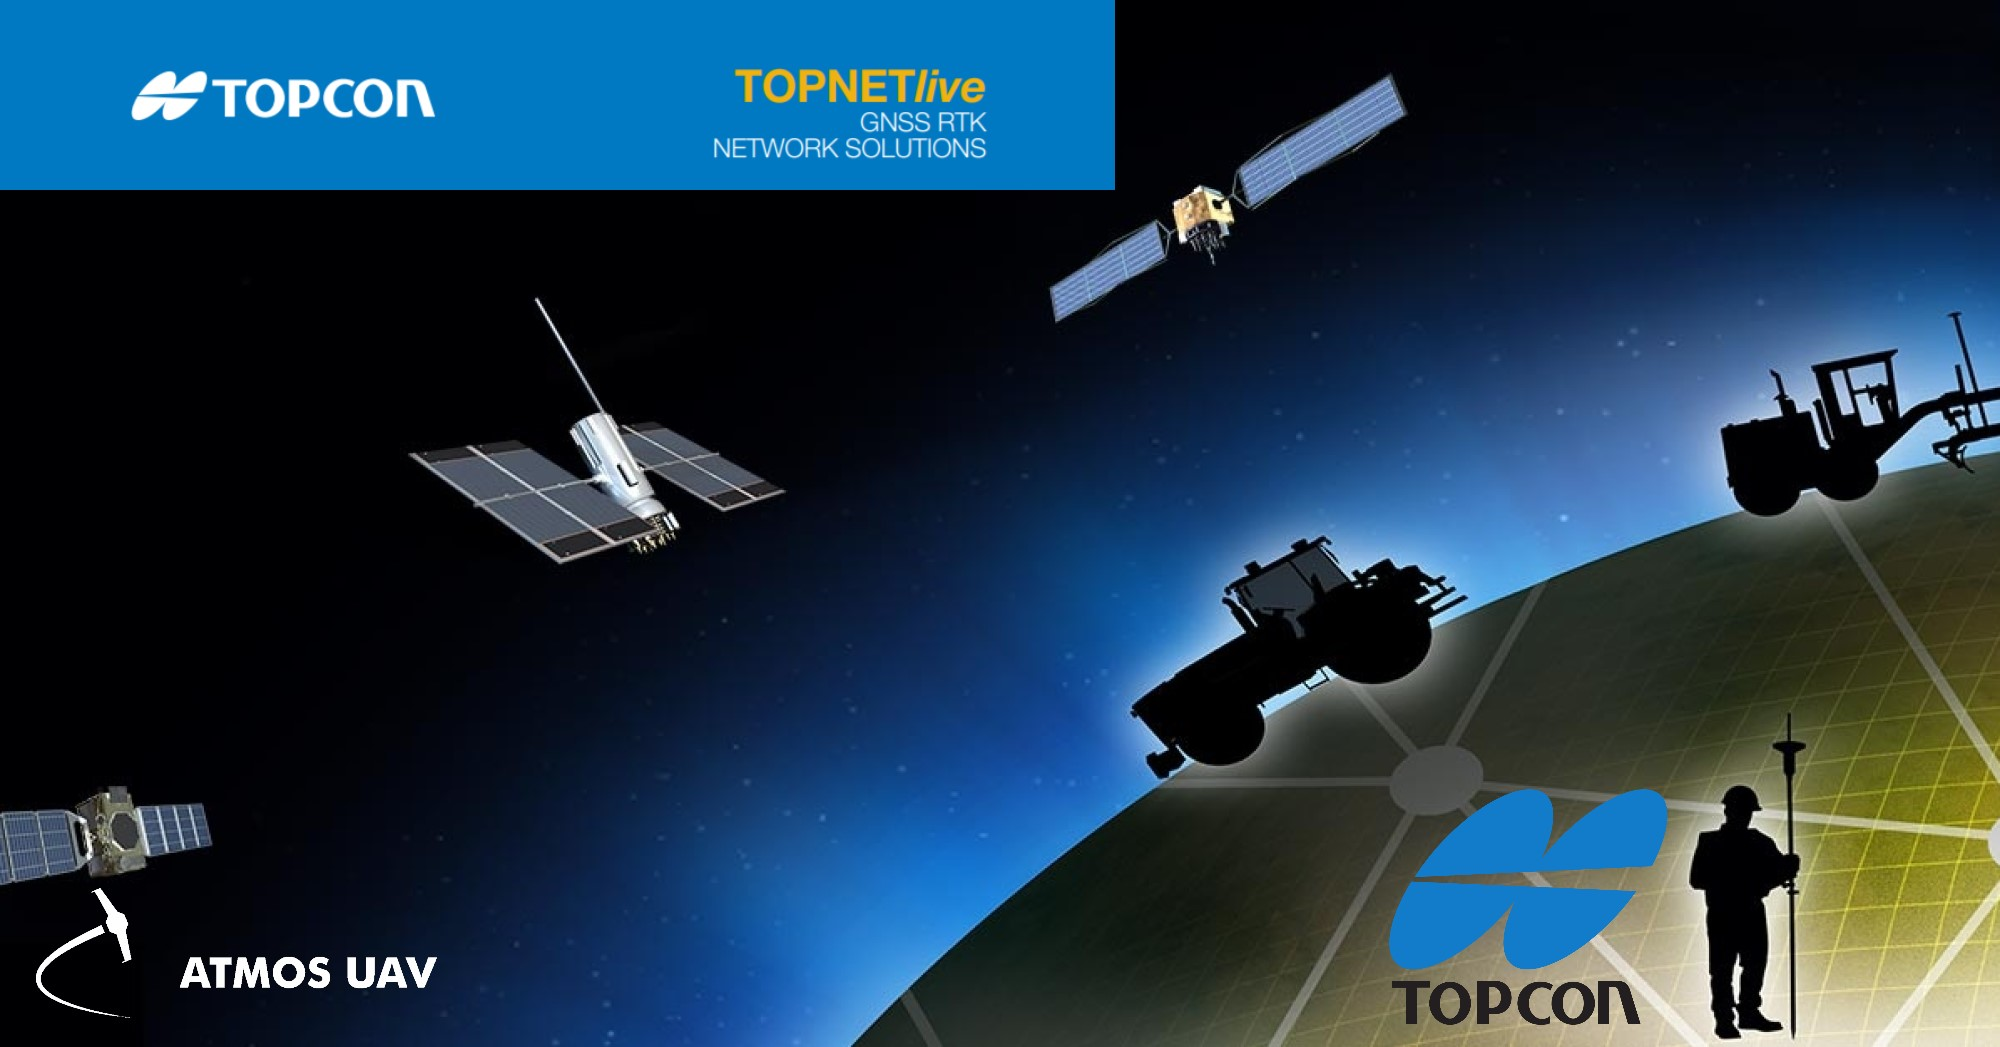 Atmos UAV partners with Topcon Positioning